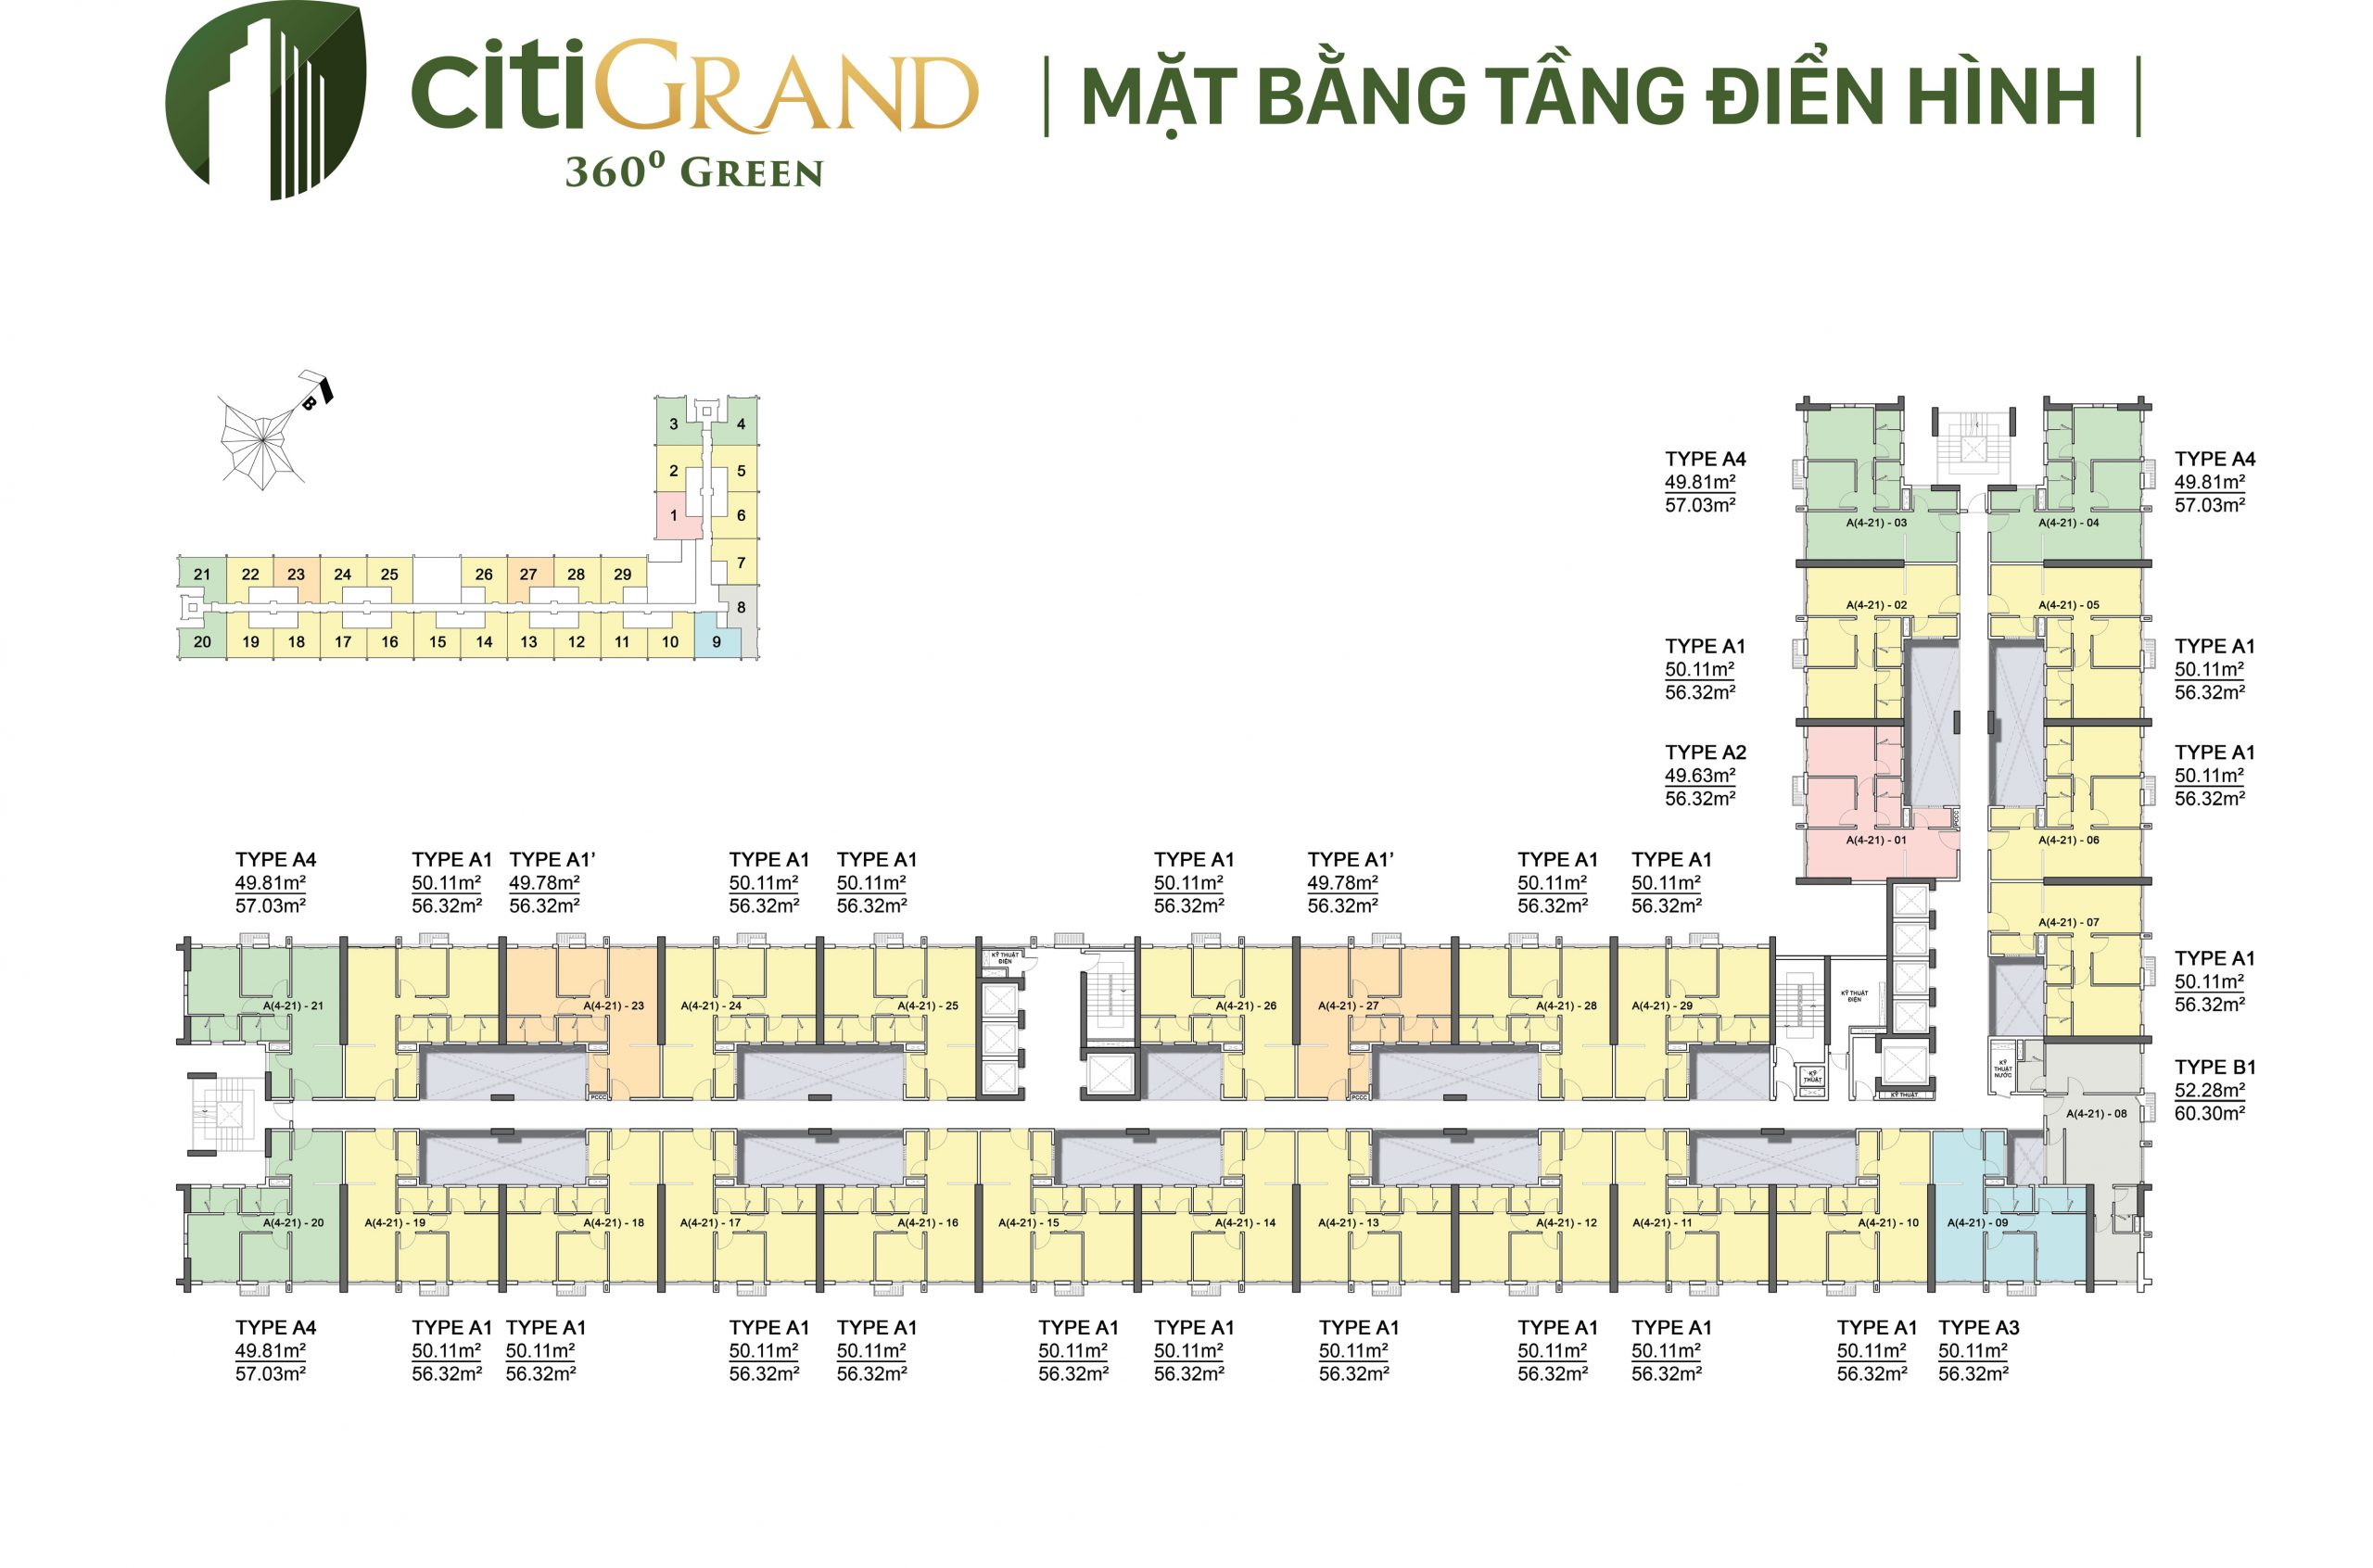 CitiGrand; can ho CitiGrand; du an CitiGrand; du an can ho CitiGrand; Citi Grand; du an Citi Grand; can ho Citi Grand